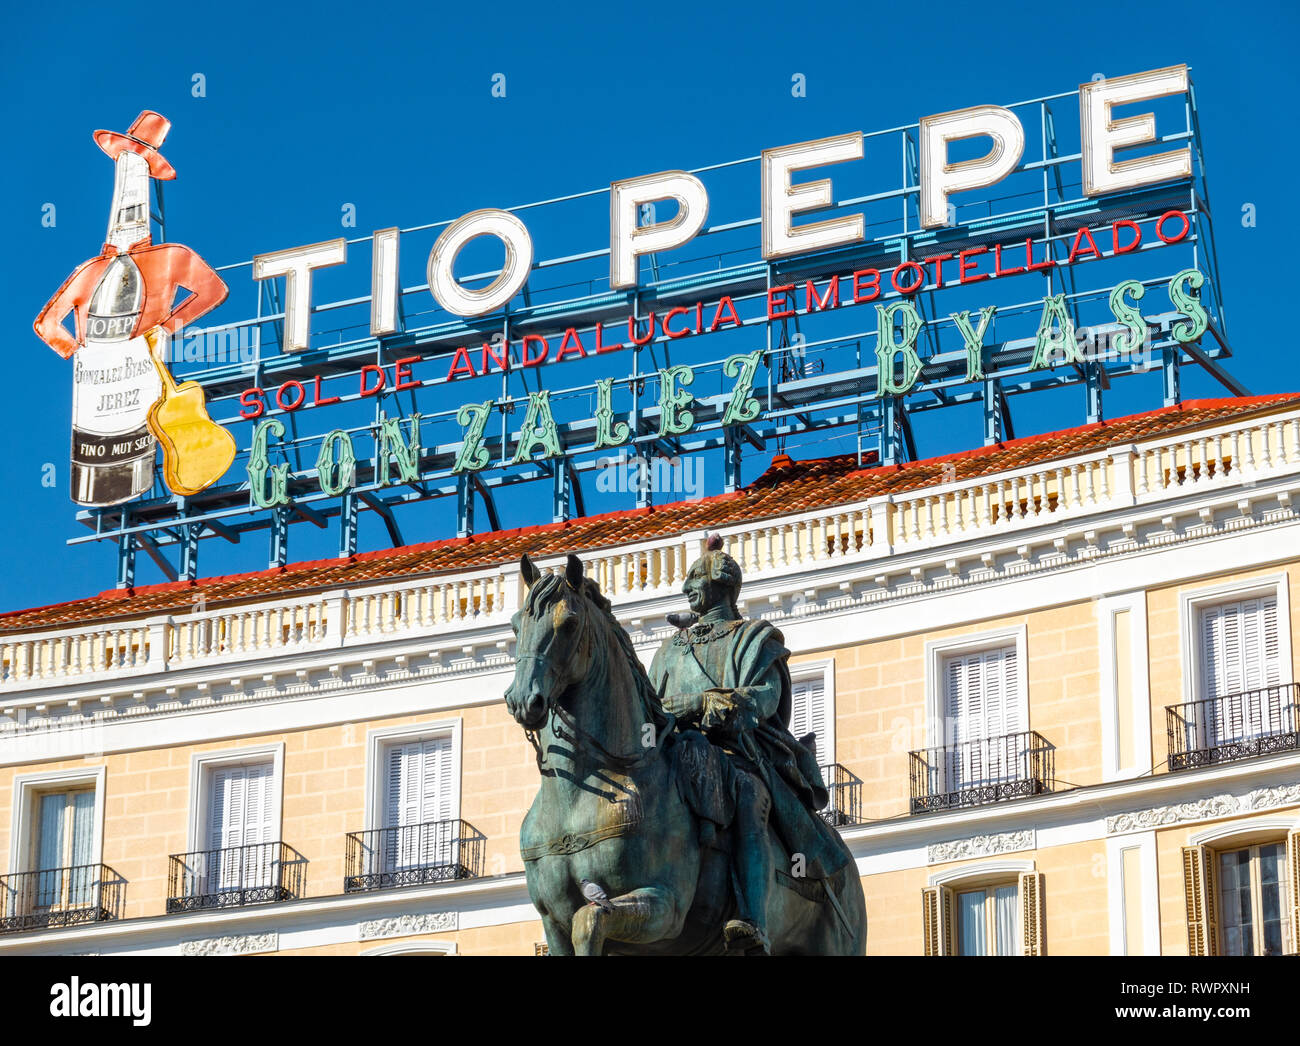 The landmark Tio Pepe sign above Puerta del Sol Square with the statue of Carlos III Charles III of Spain in Madrid Stock Photo